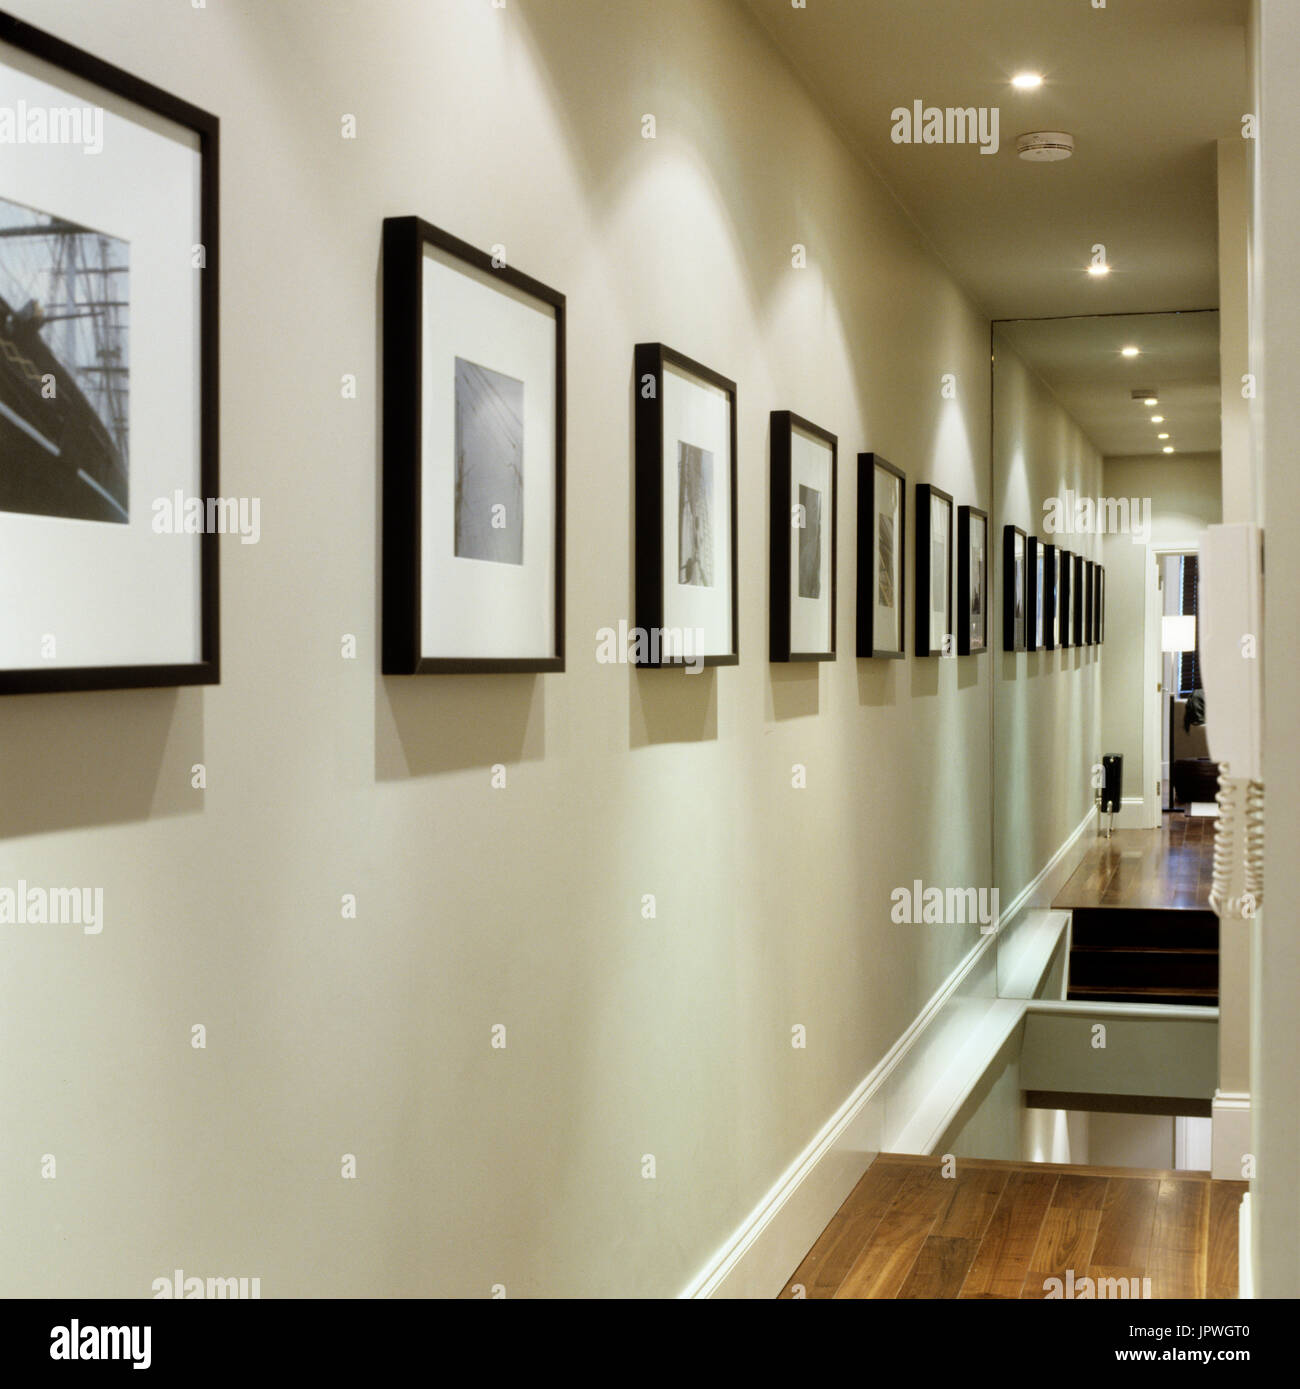 Photographs in hallway at night - Stock Image